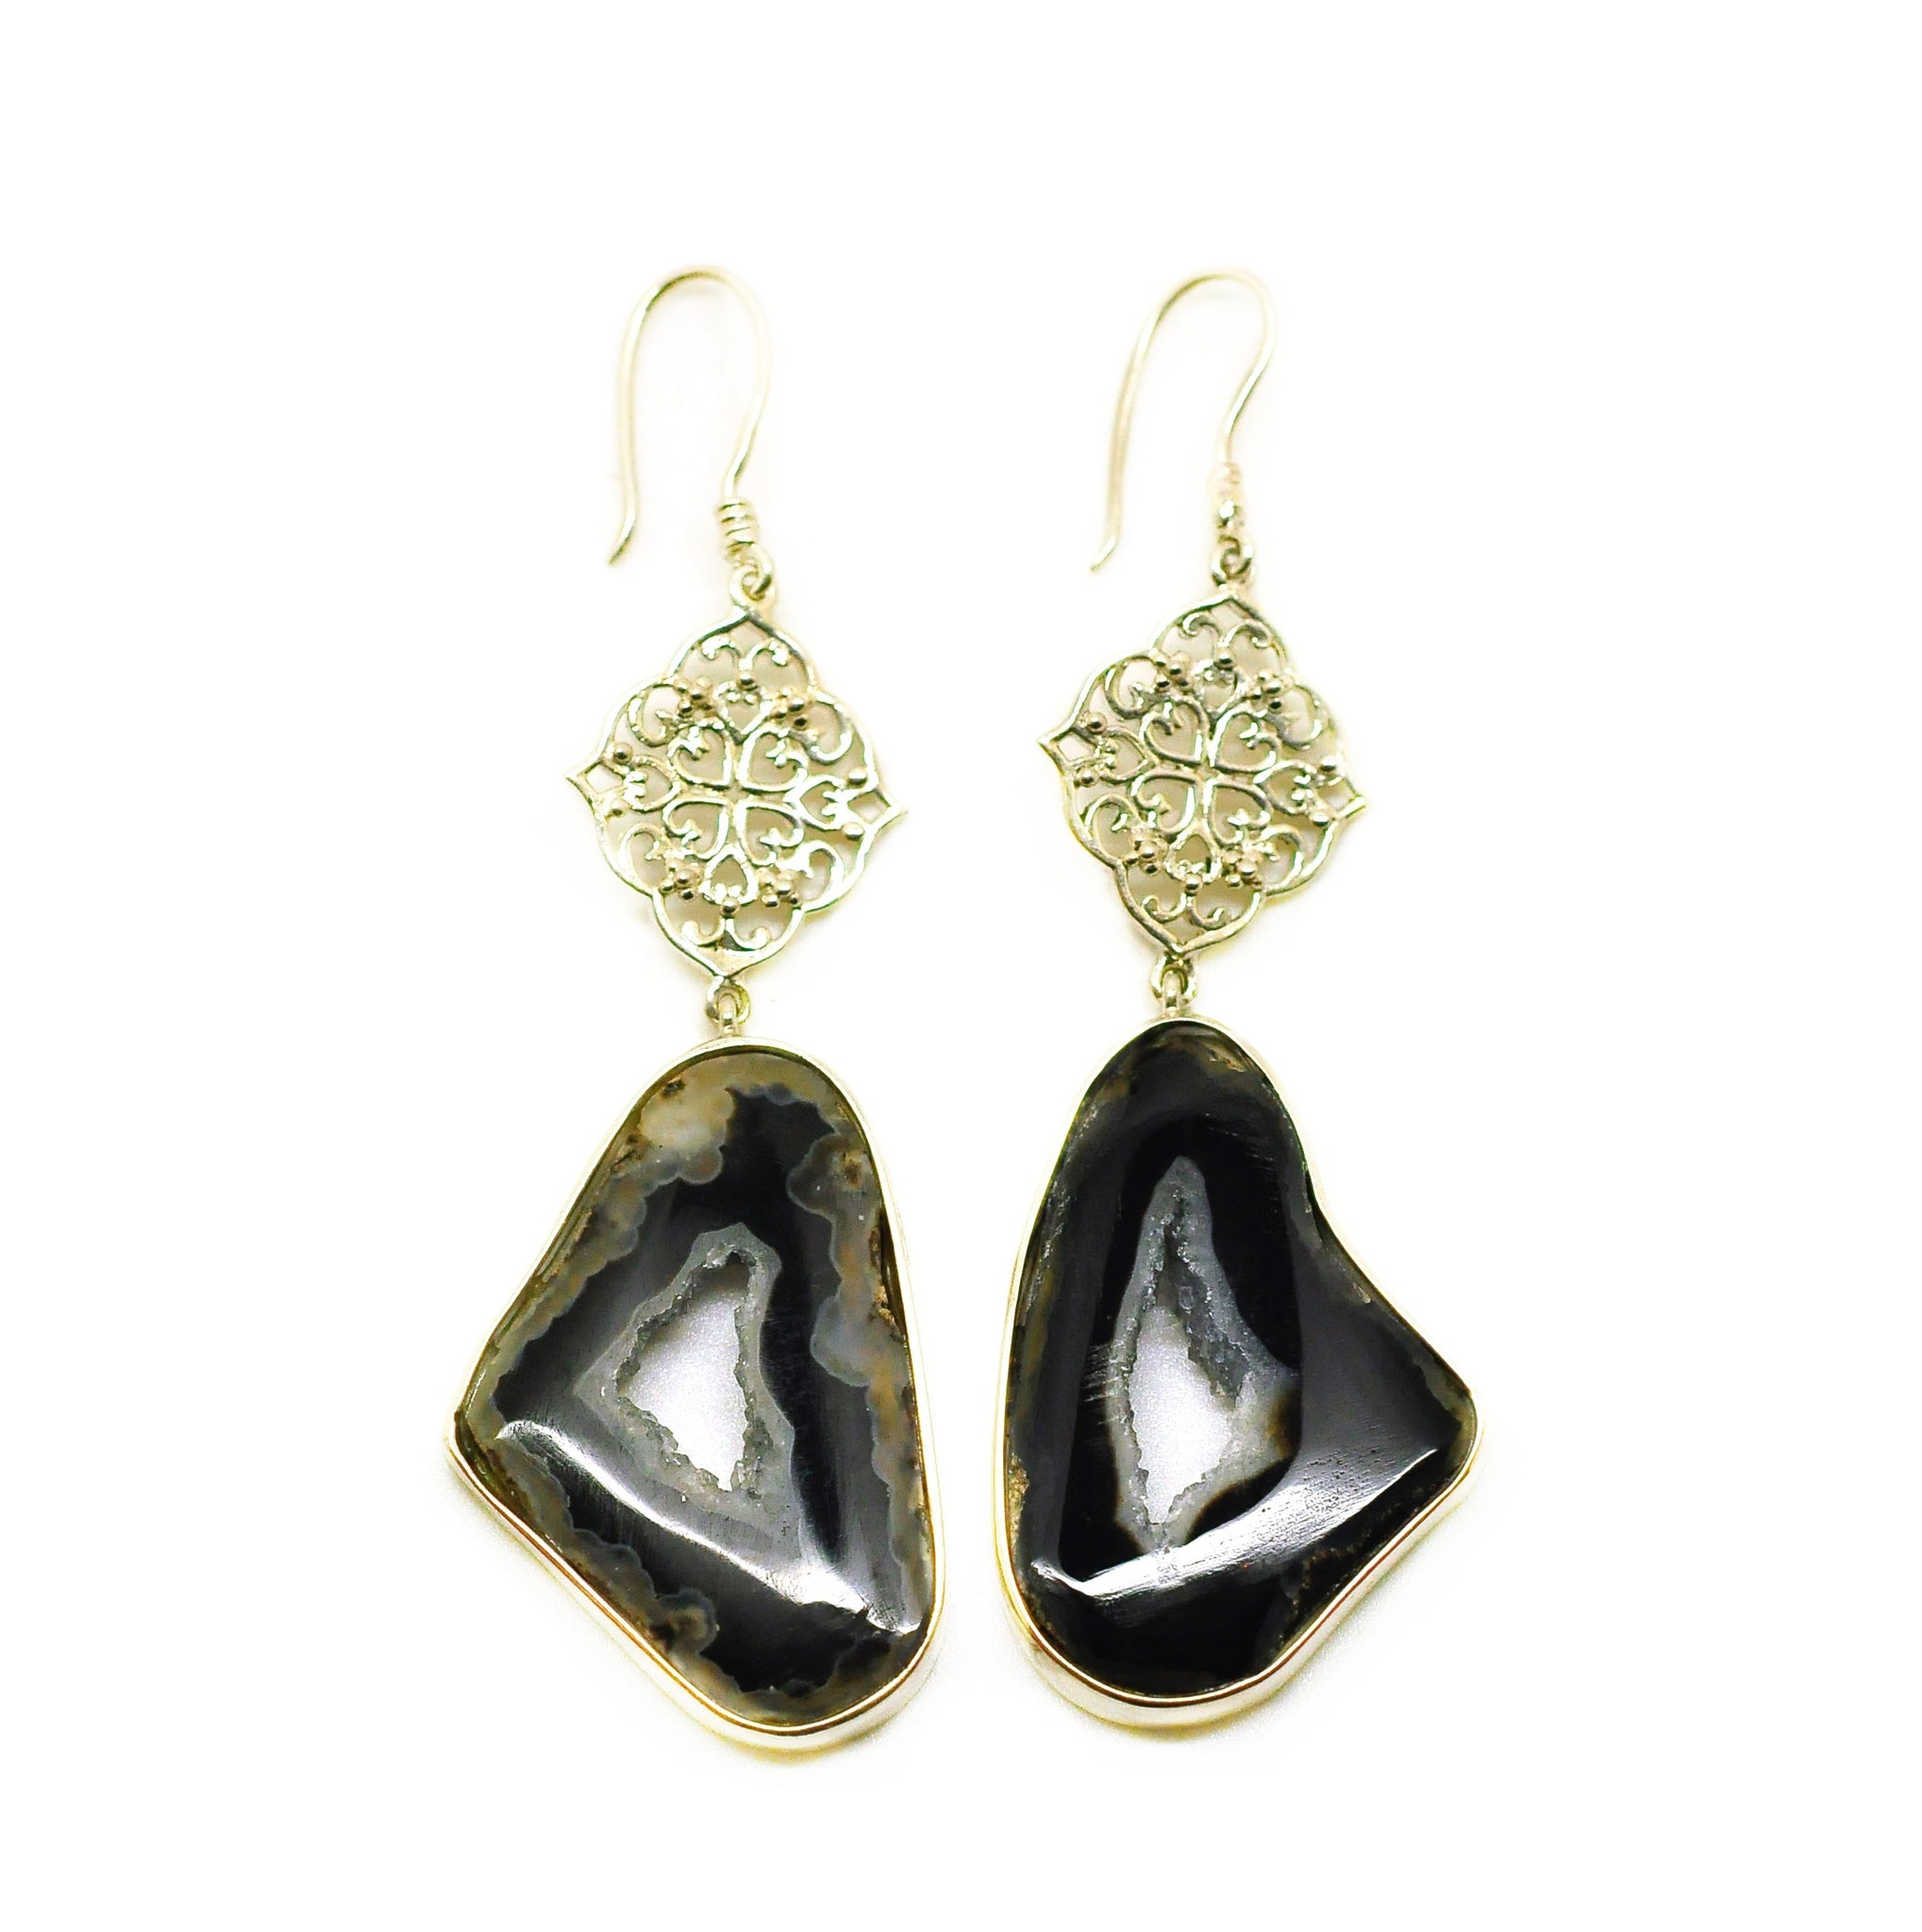 SOLD - NEW Druzy earring Black